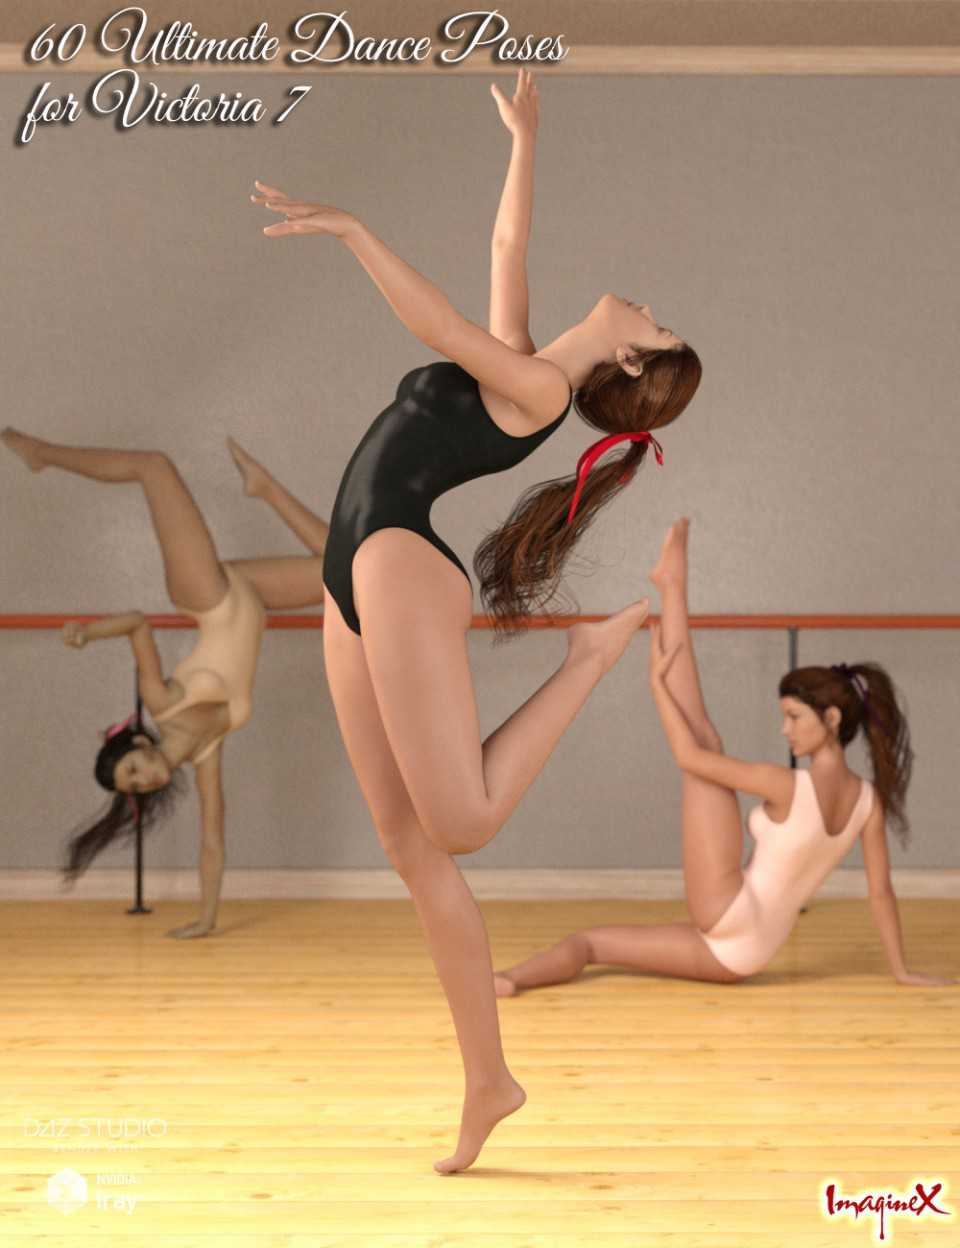 60 Ultimate Dance Poses for Victoria 7 & 8